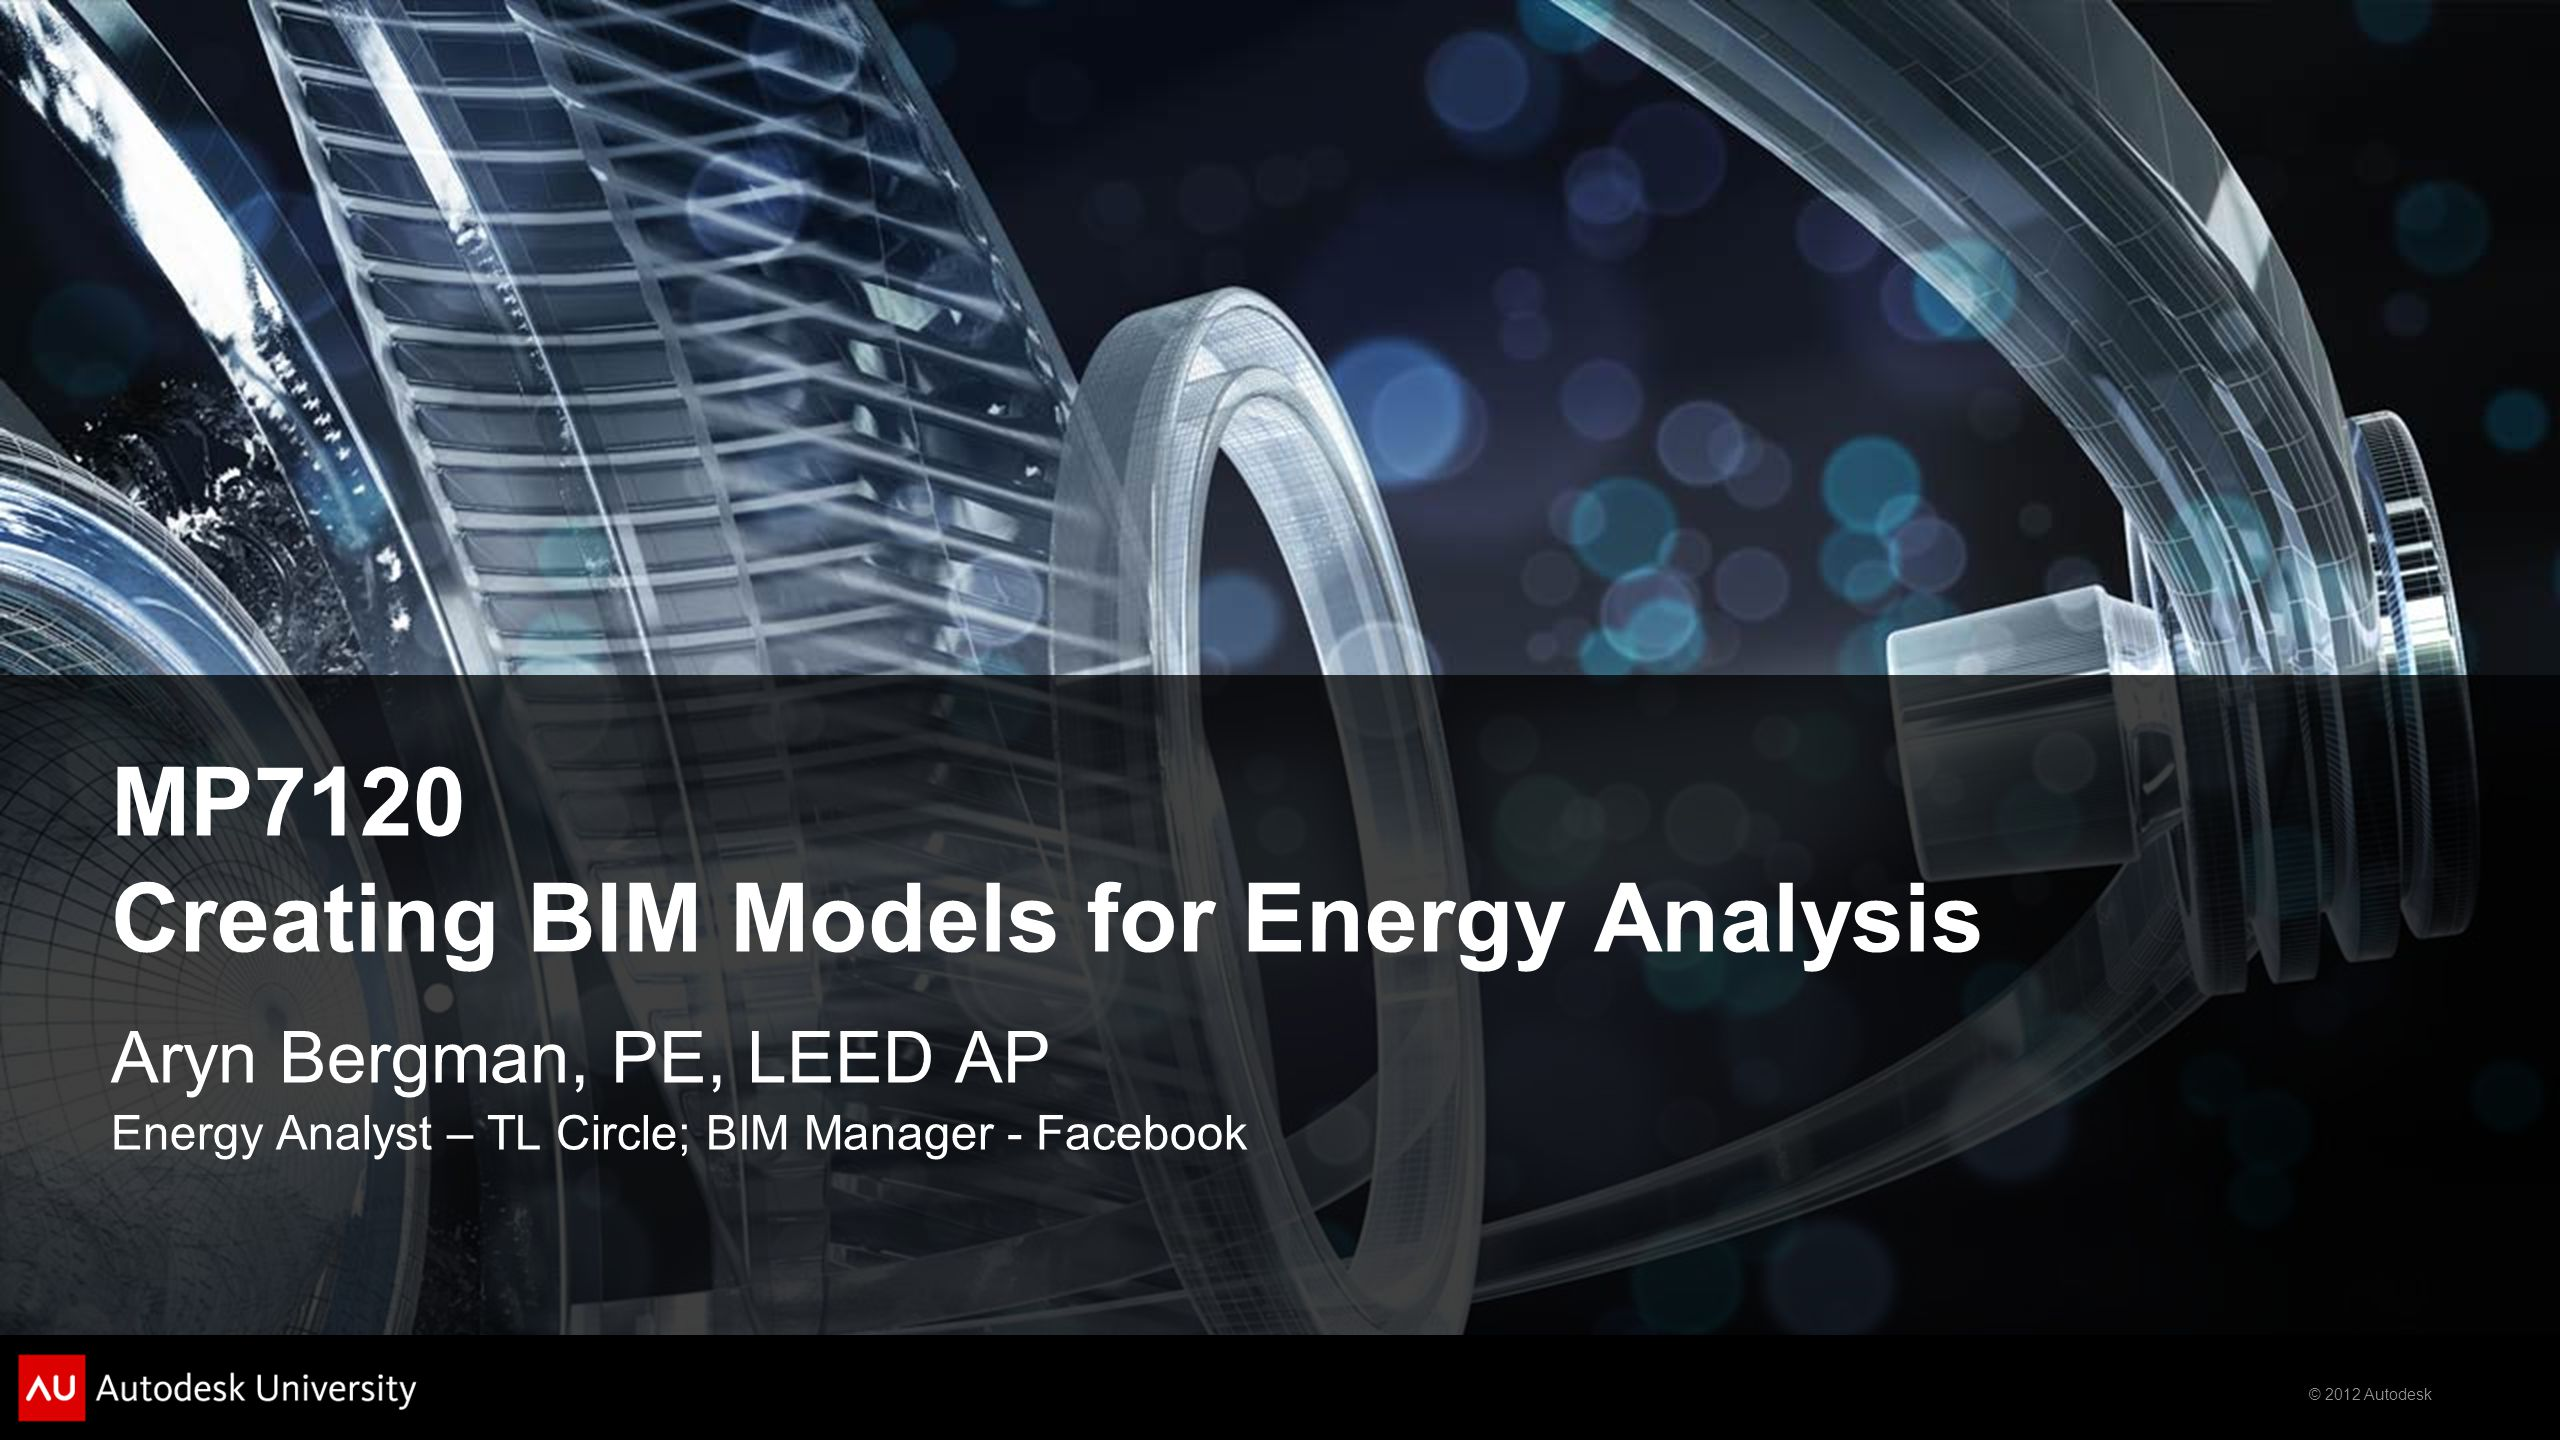 MP7120 Creating BIM Models for Energy Analysis